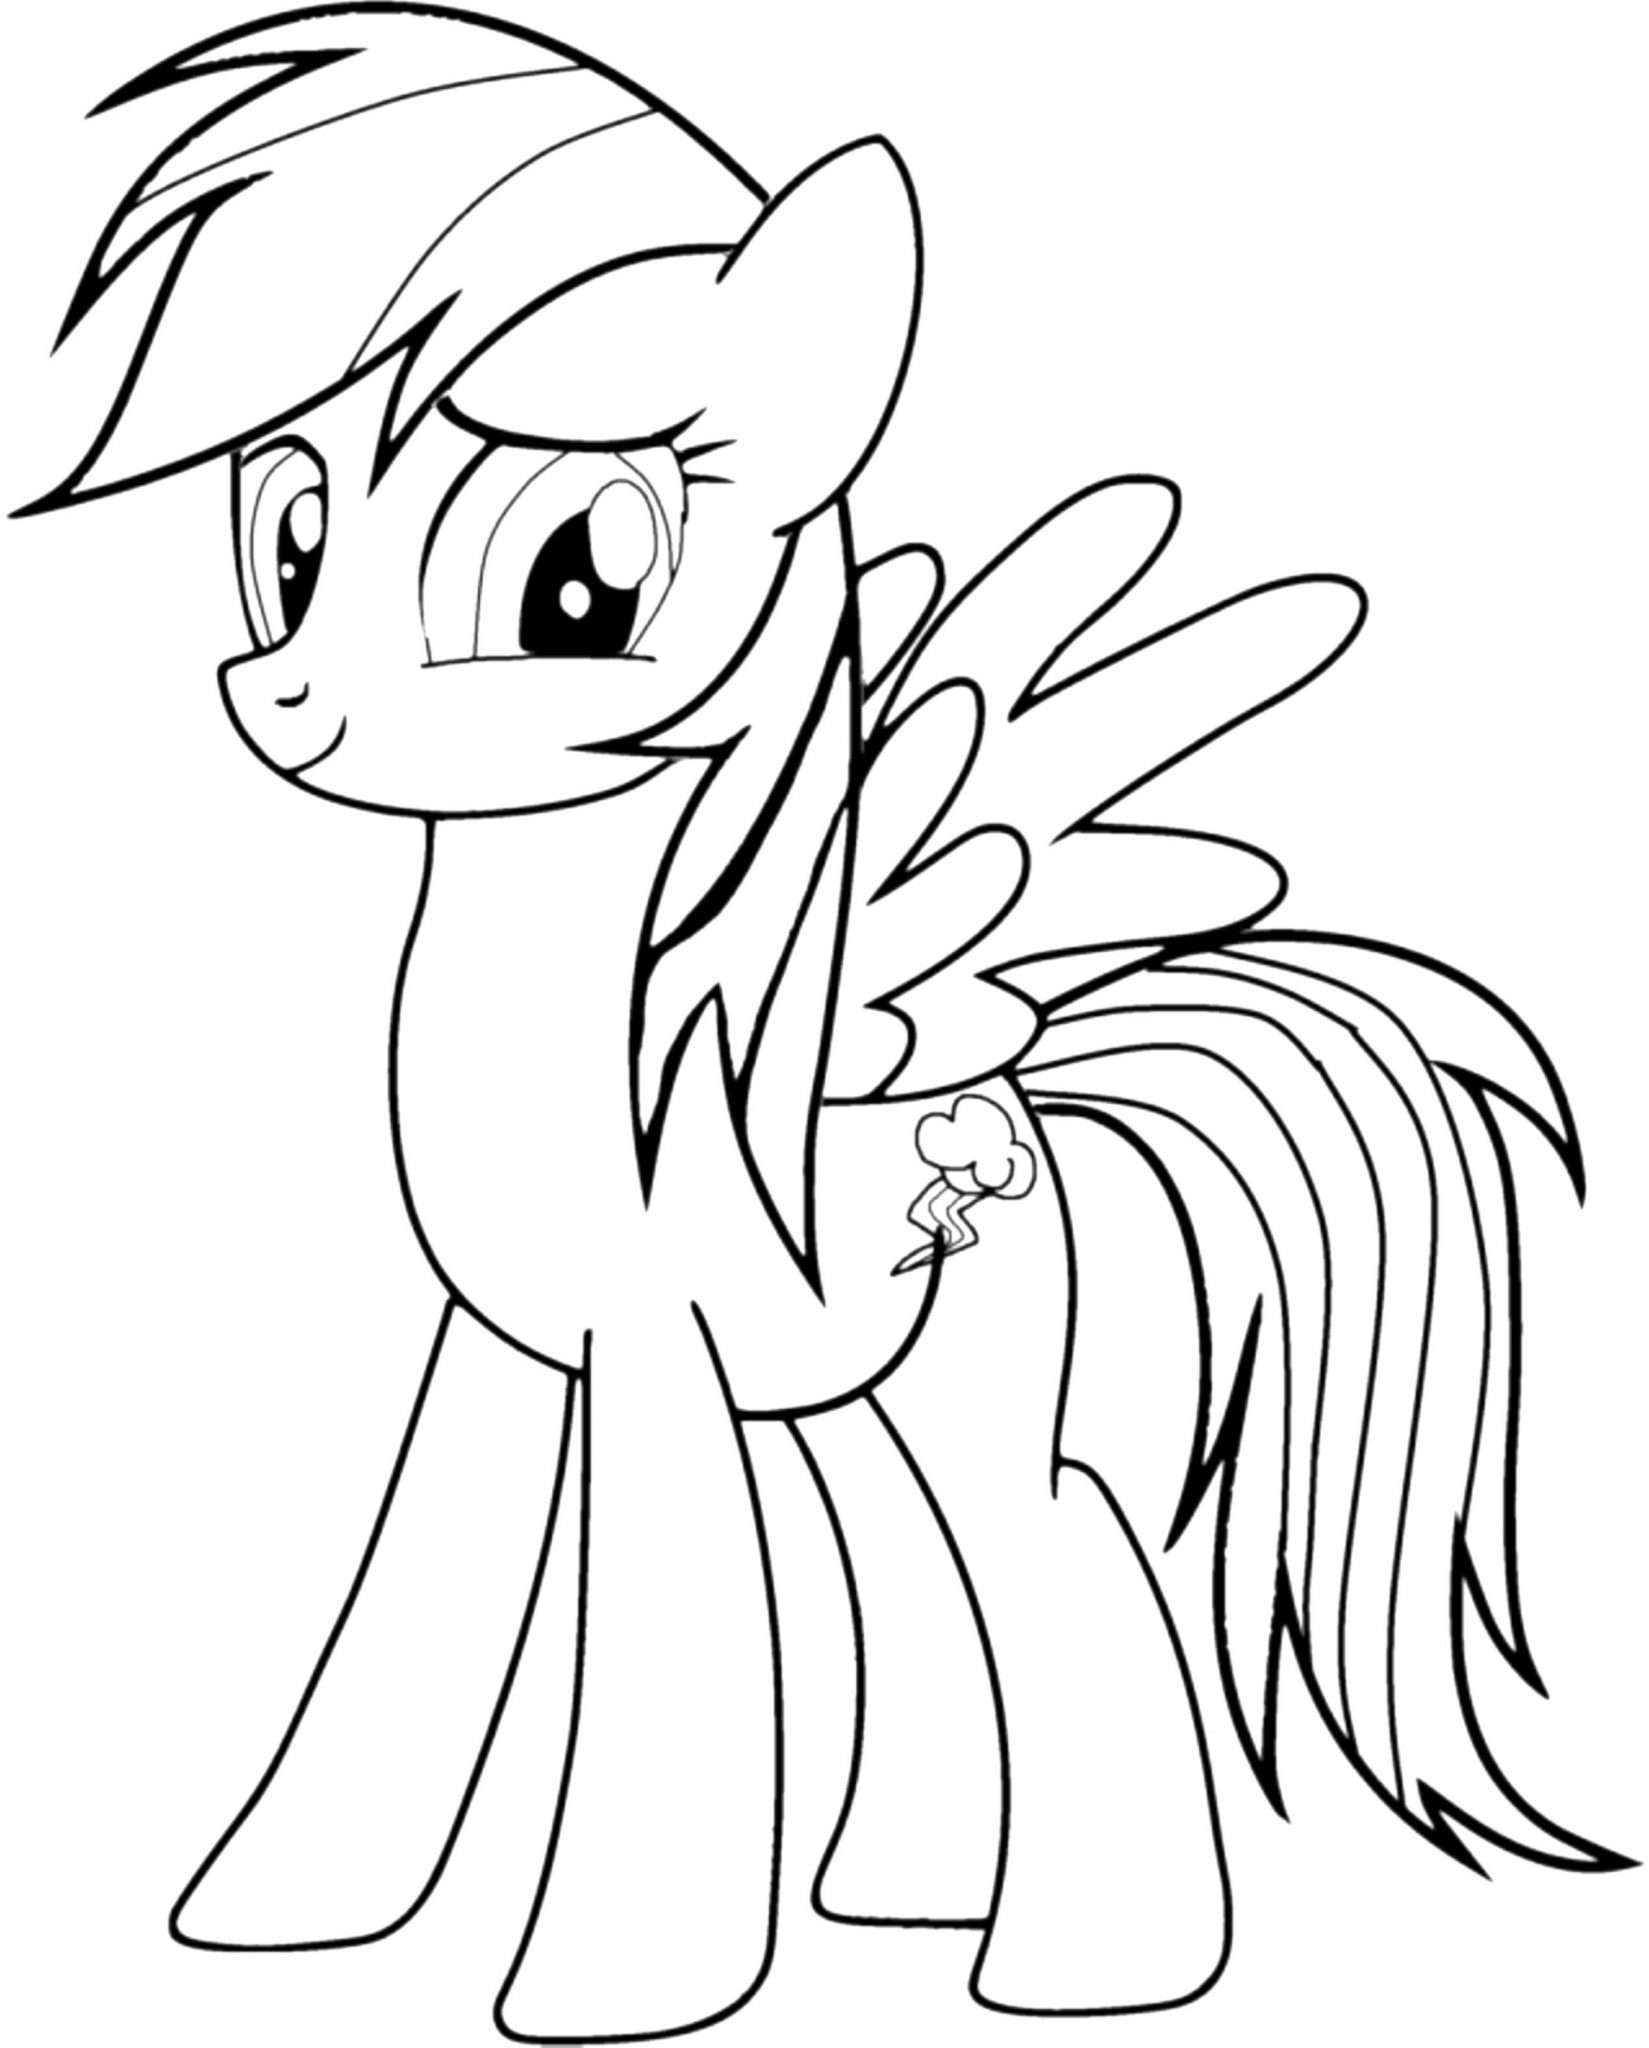 rainbow dash colouring pages rainbow dash coloring page free printable coloring pages dash rainbow pages colouring